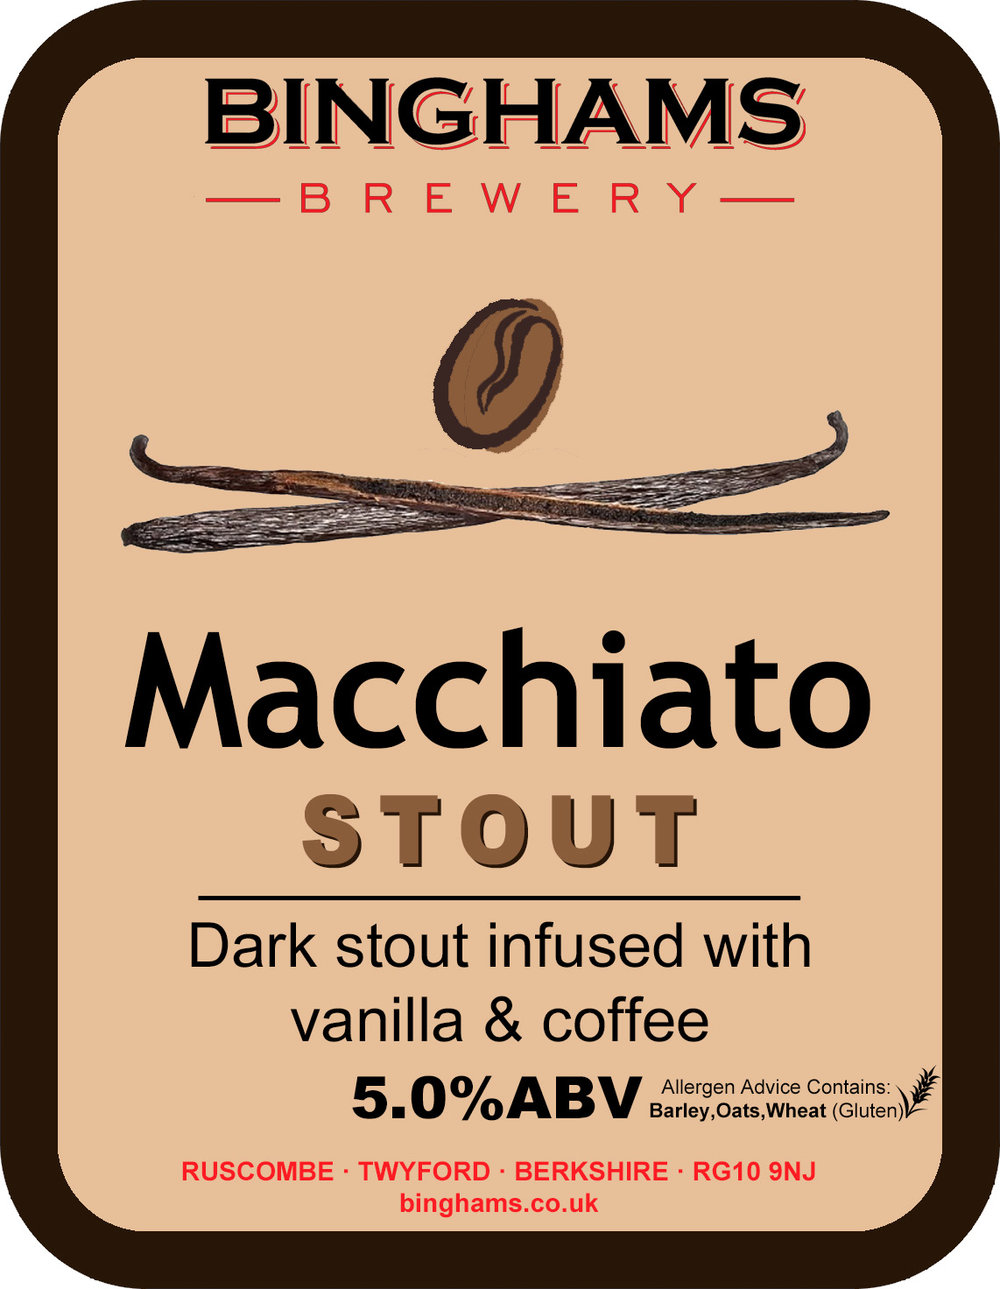 MACCHIATO STOUT 5.0% ABV - Vegan friendly